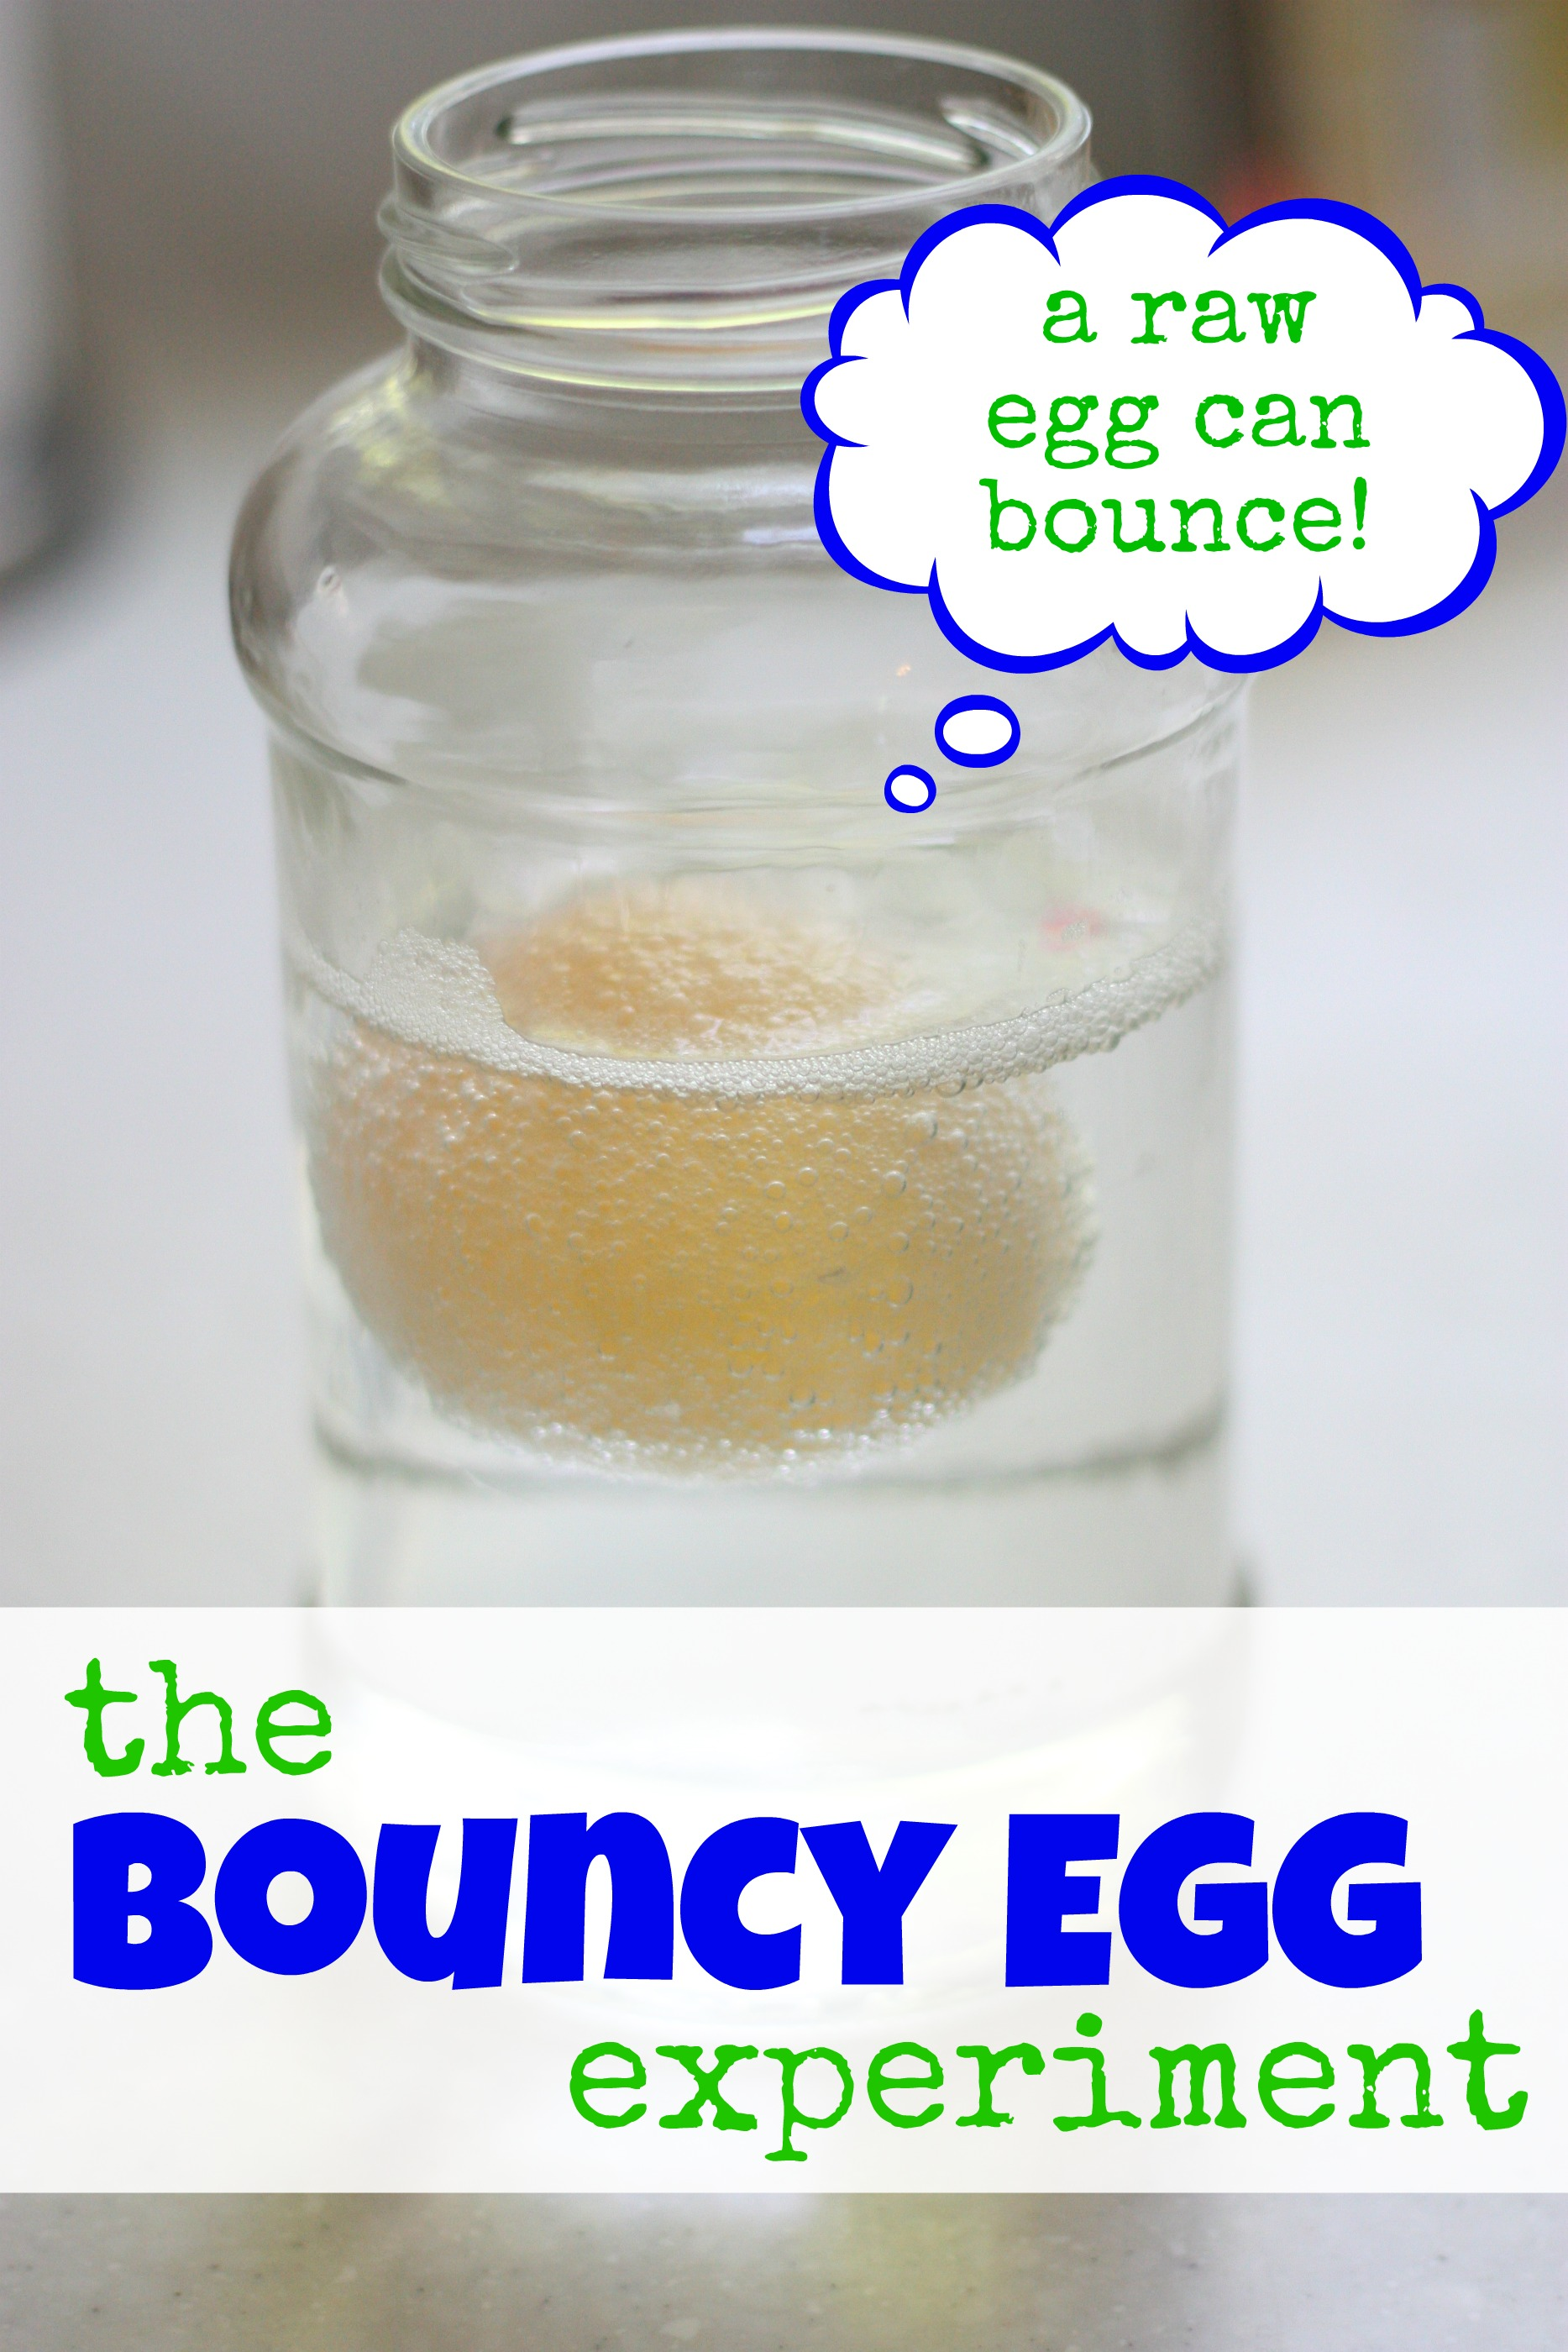 The Bouncy Egg